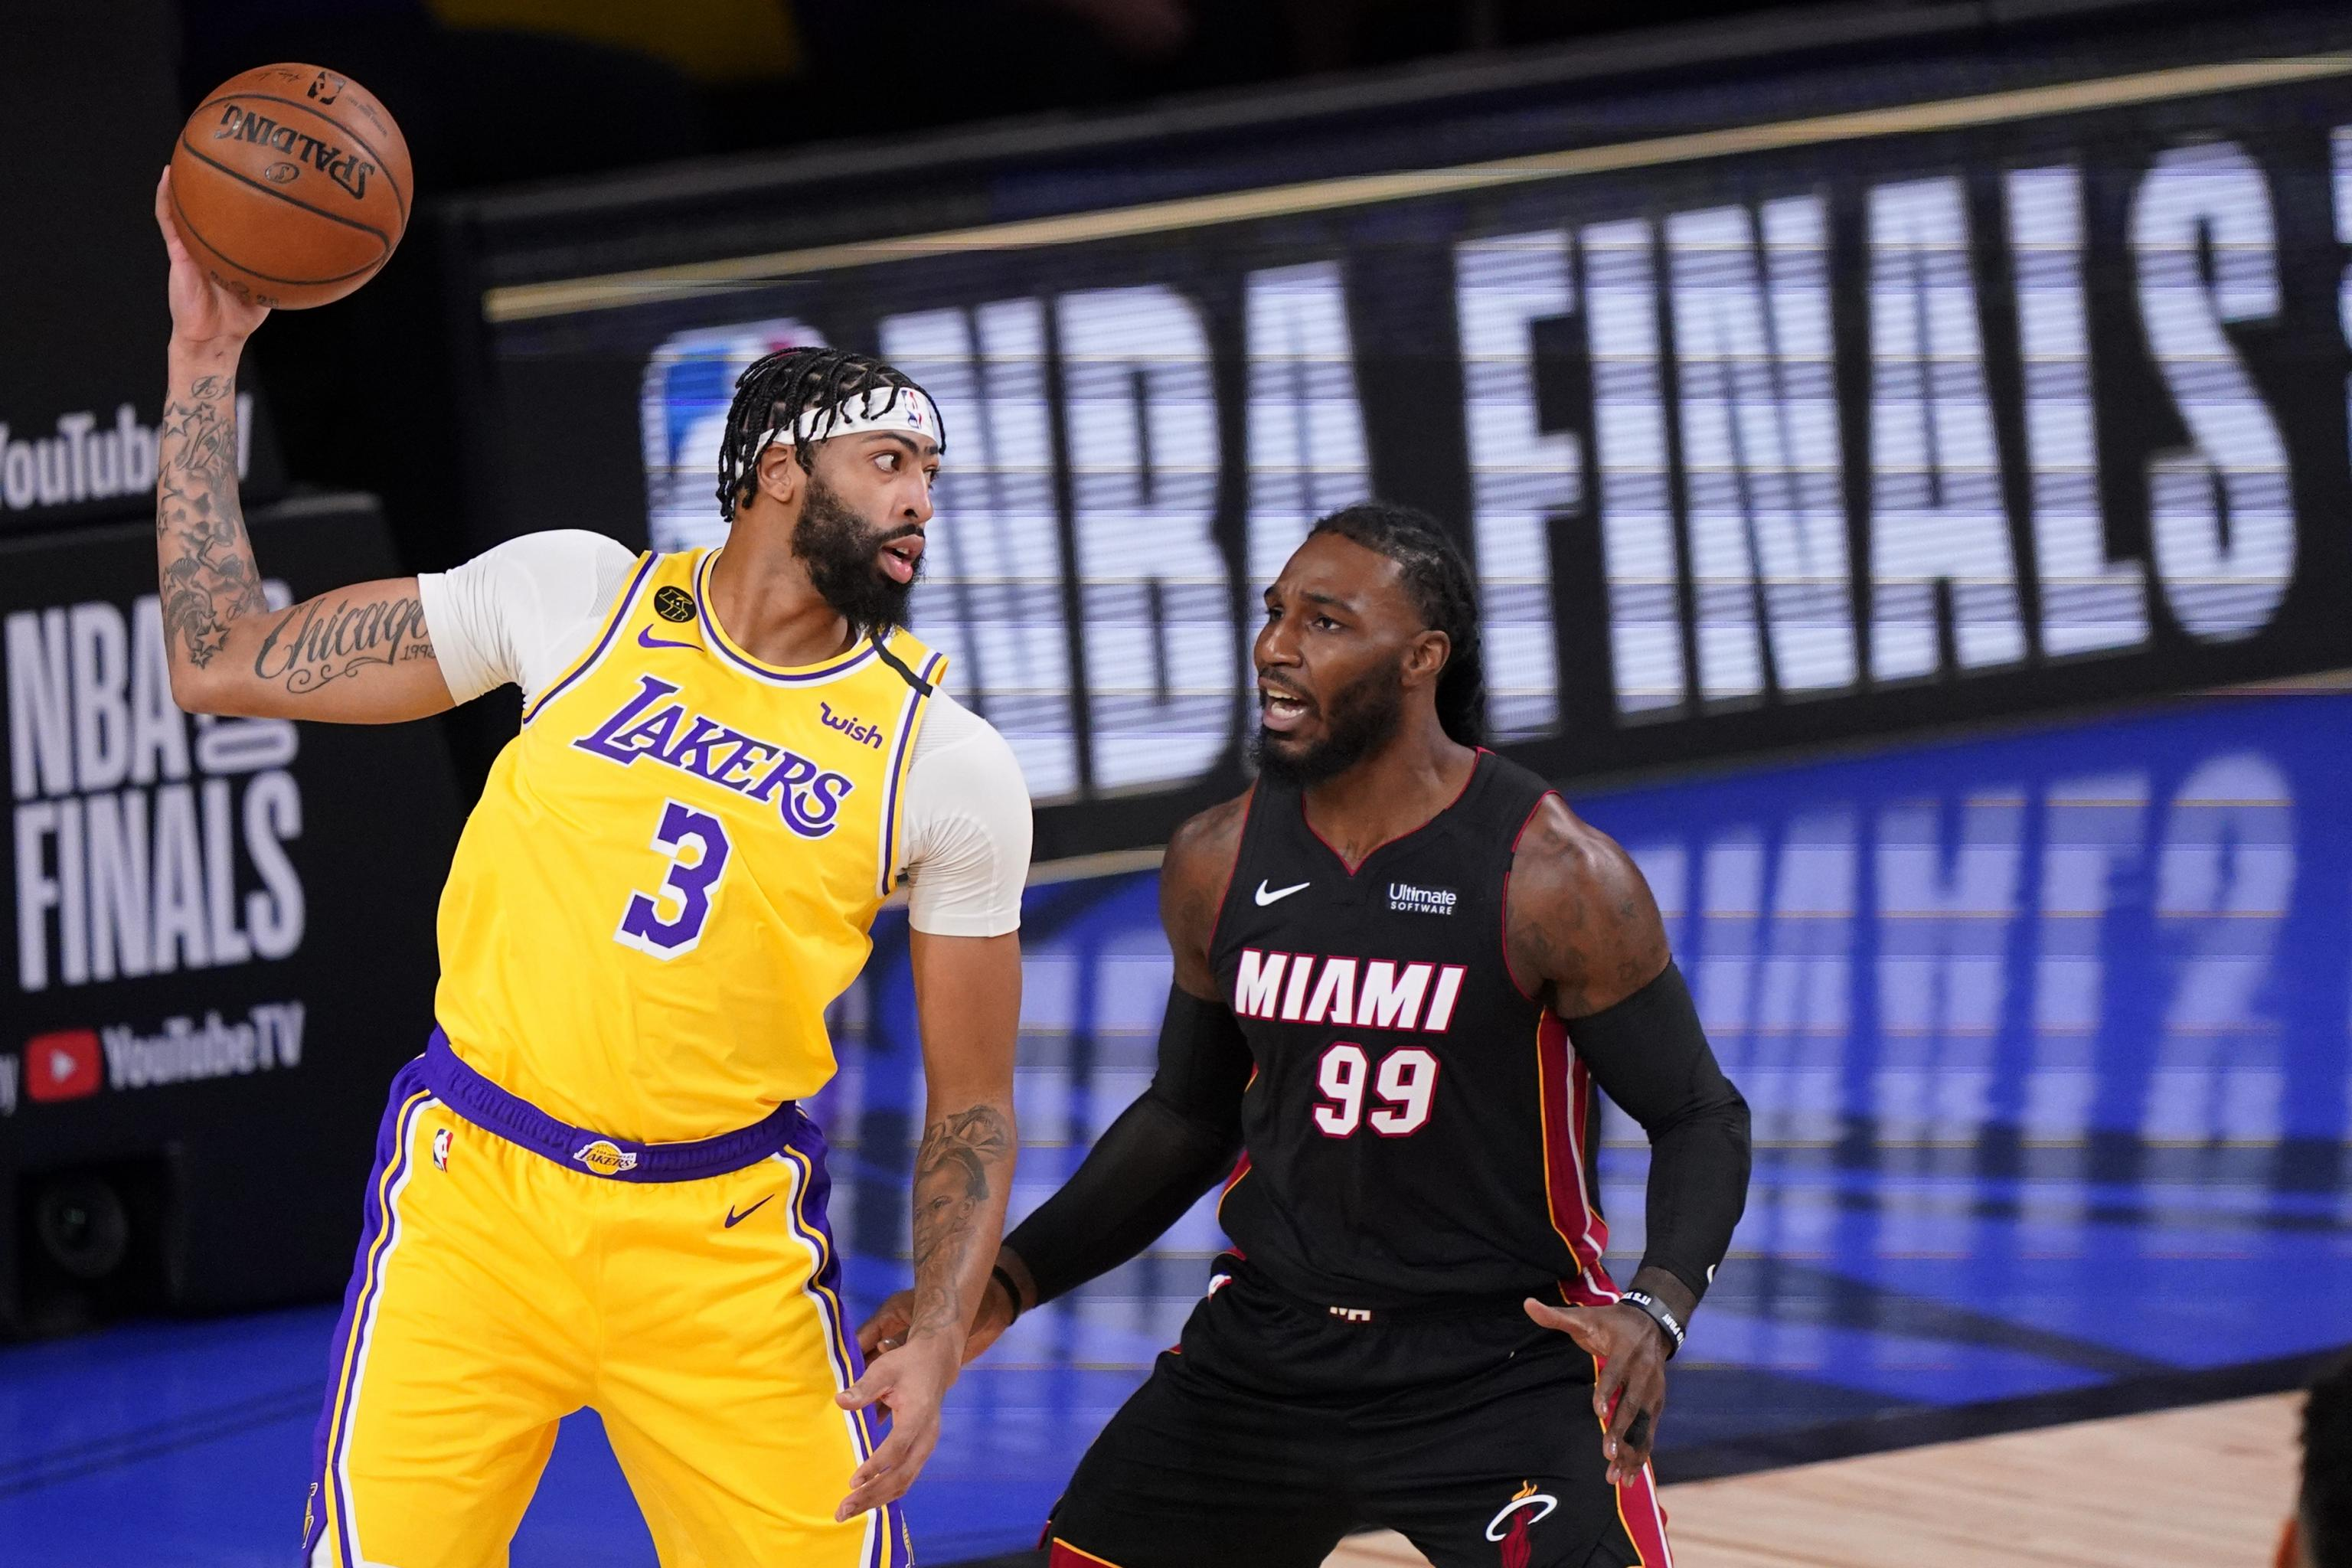 Nba Finals 2020 Odds Prop Bets Score Prediction For Heat Vs Lakers Game 2 Bleacher Report Latest News Videos And Highlights